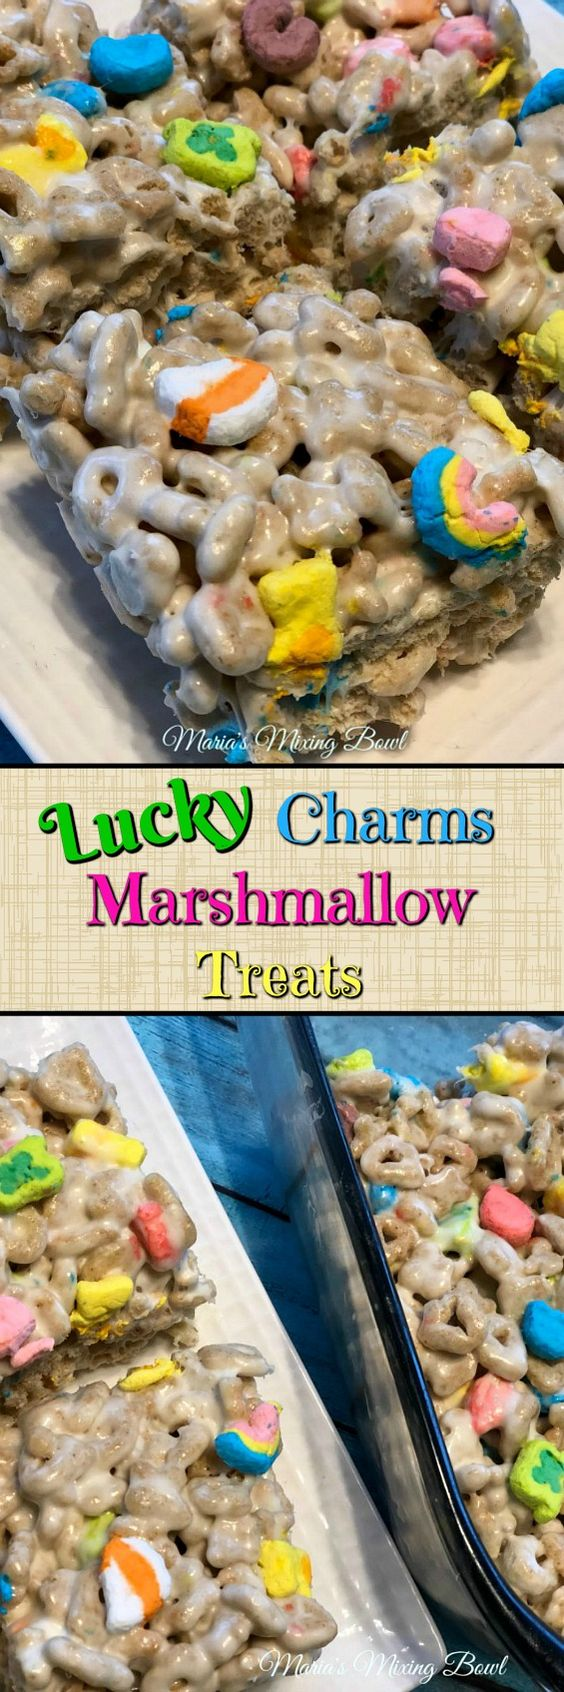 Lucky Charms Marshmallow Treats - A fun and super easy treat the whole family will love. Young and old. And you only need 3 ingredients to make these treats!